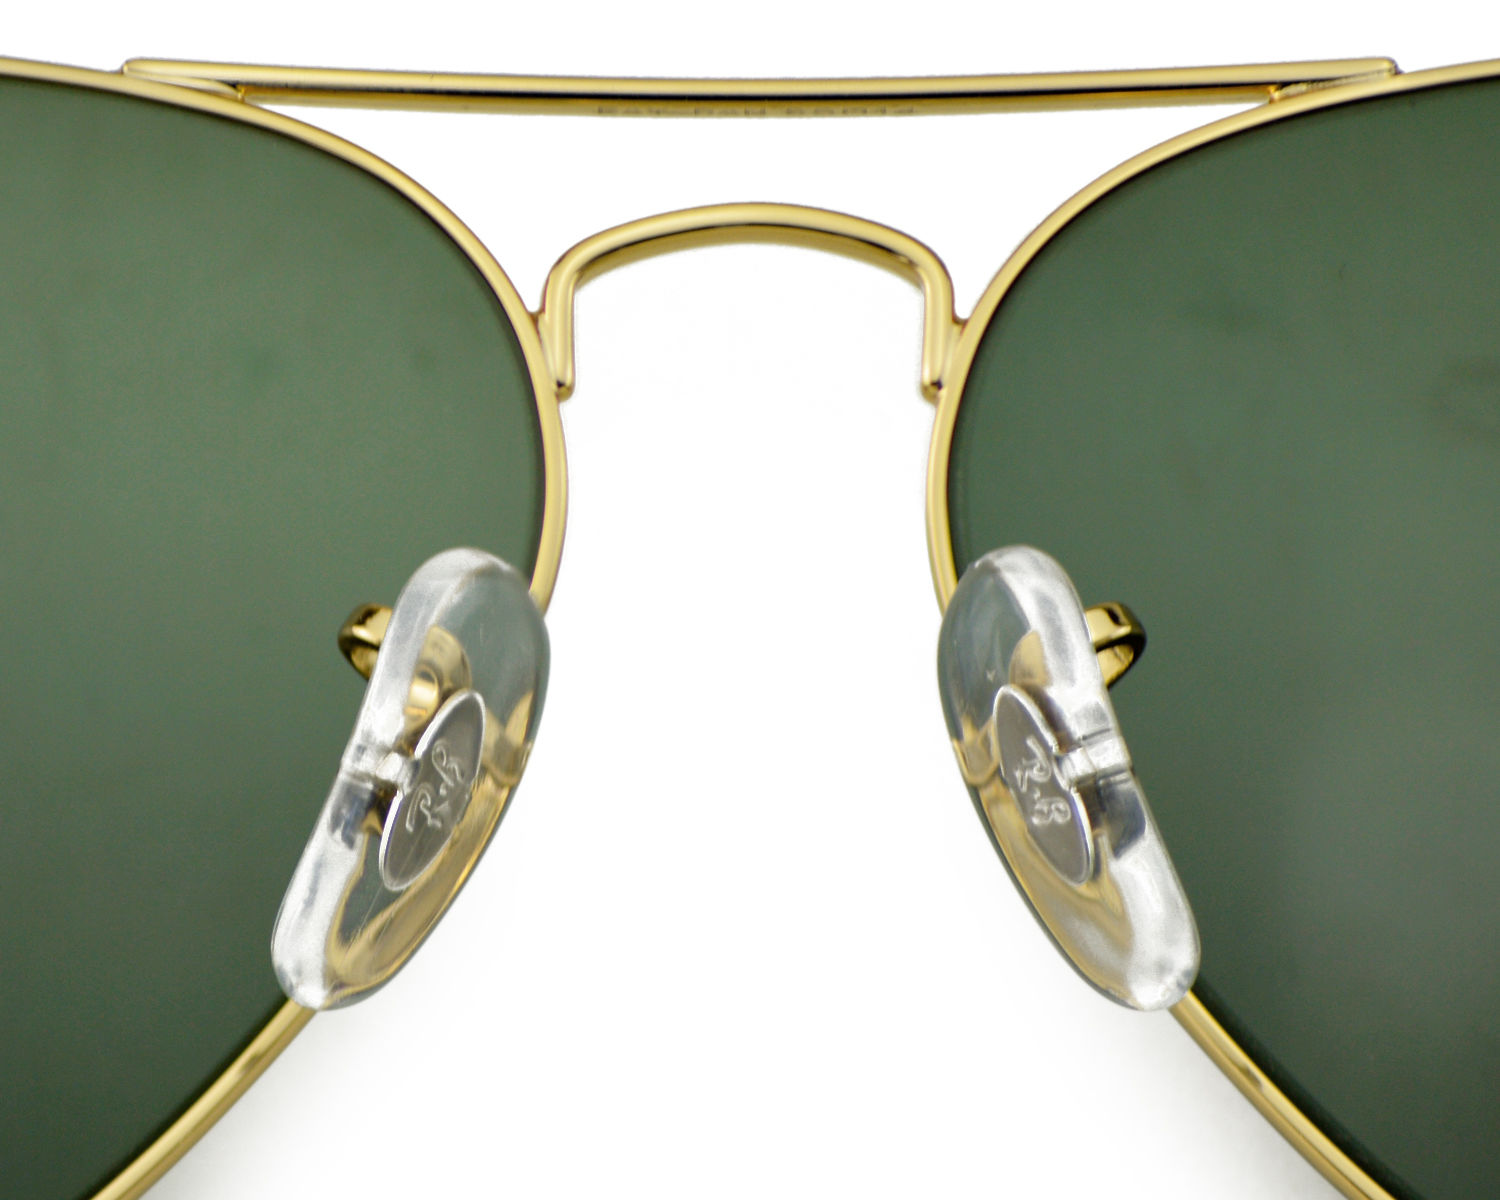 e47dc7bc39a1a Ray-Ban RB3025 Aviator Classic L0205 Gold Frame Green Classic G-15 Lenses  Unisex Sunglasses 58mm